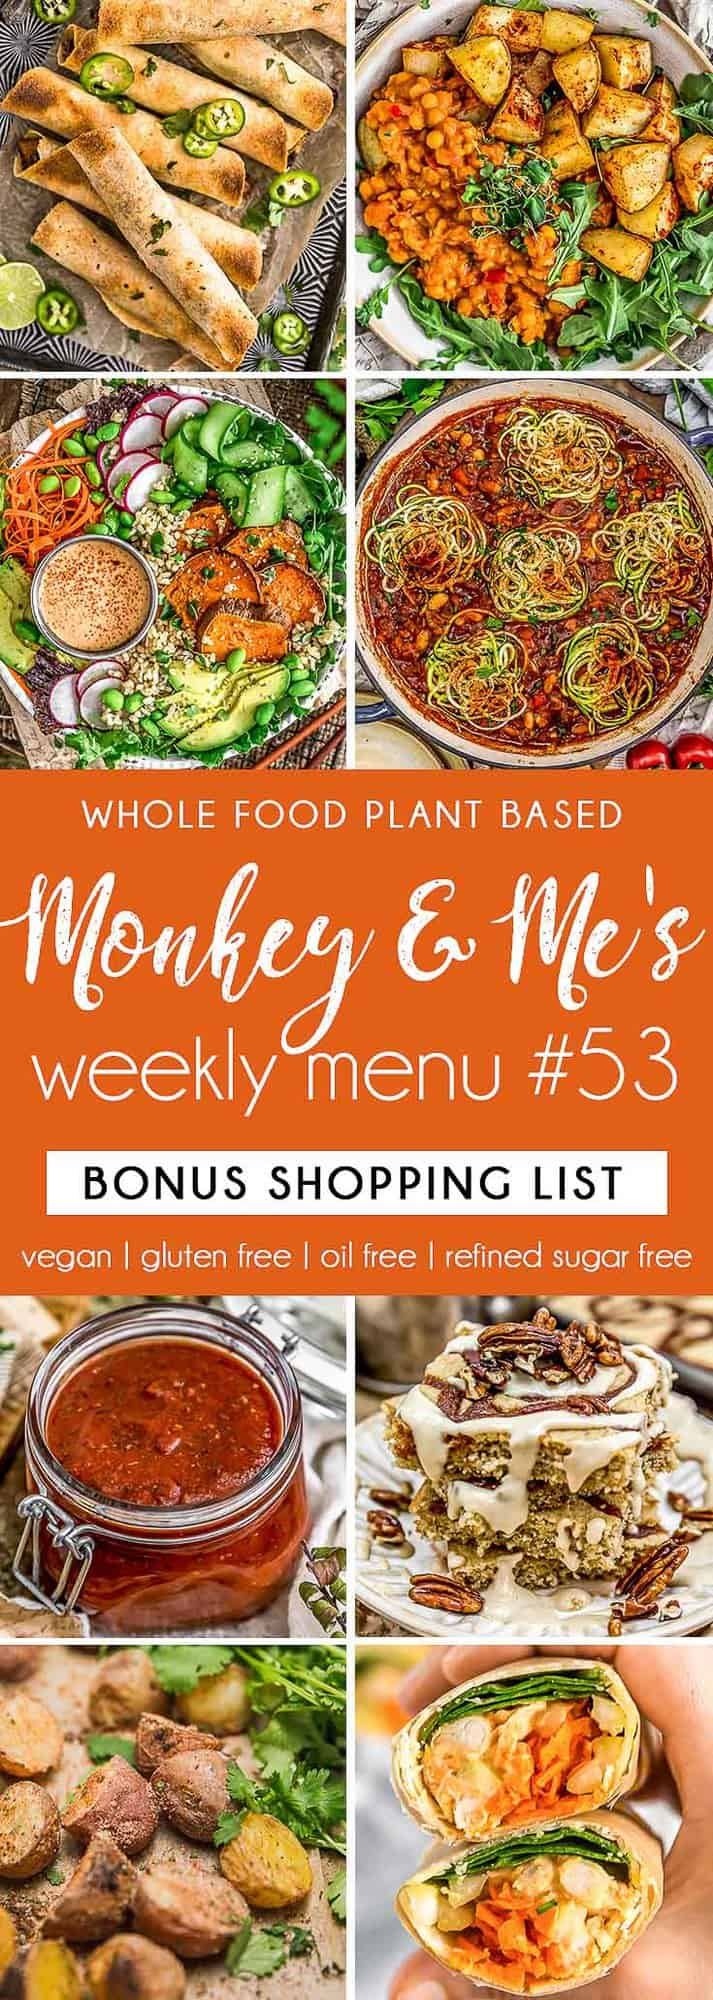 Monkey and Me's Menu 53 featuring 8 recipes